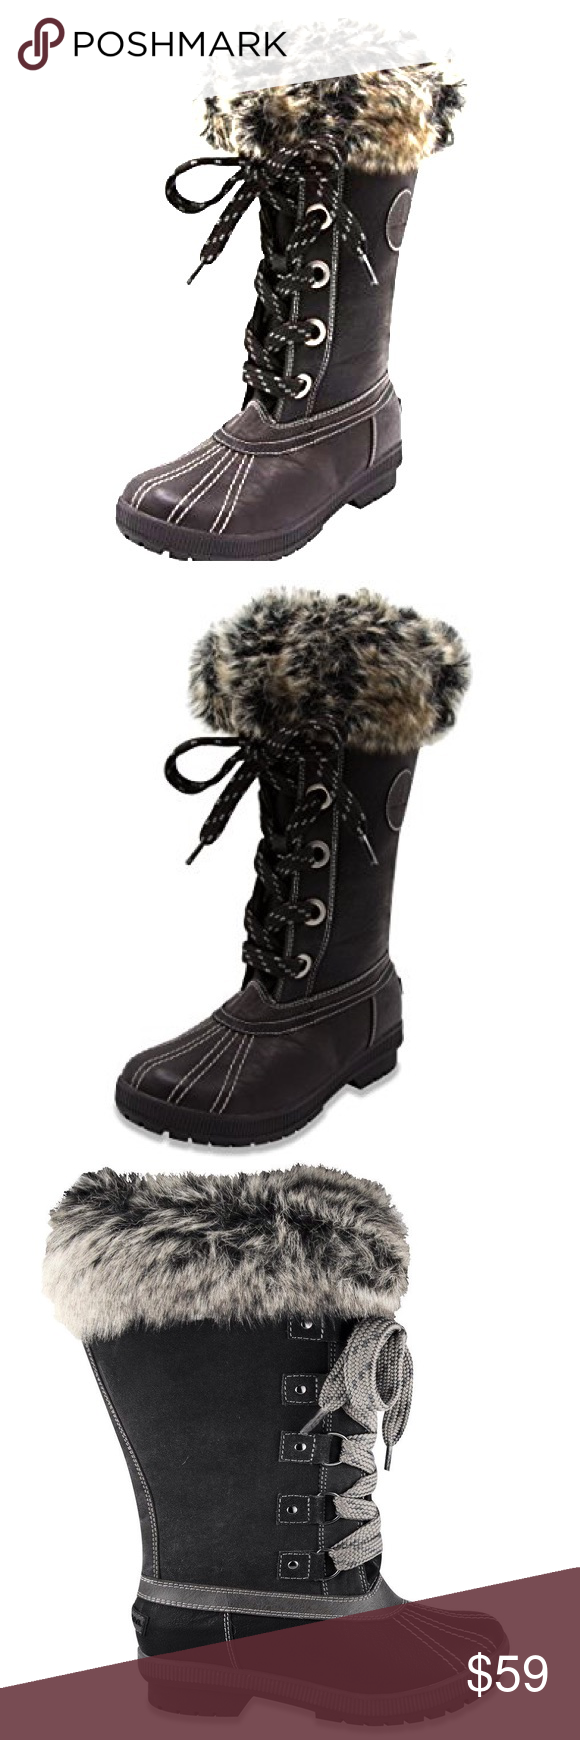 b4df9629550 London Fog Melton Cold Weather Waterproof SnowBoot London Fog Womens Melton  Cold Weather Waterproof Snow Boot London Fog Shoes Winter   Rain Boots